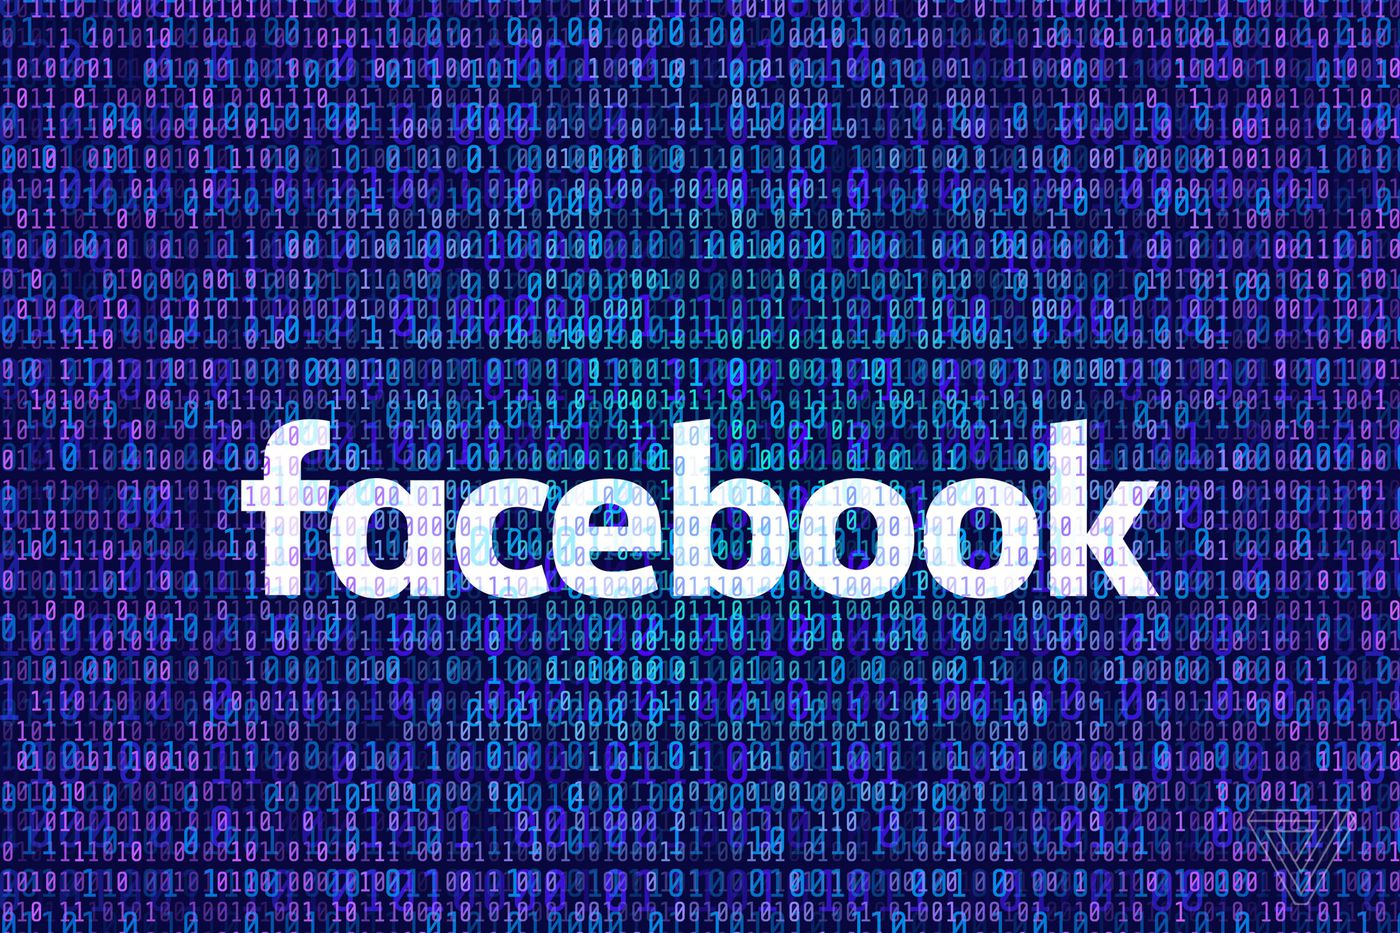 Facebook confirms years-old messages are randomly coming back to haunt users